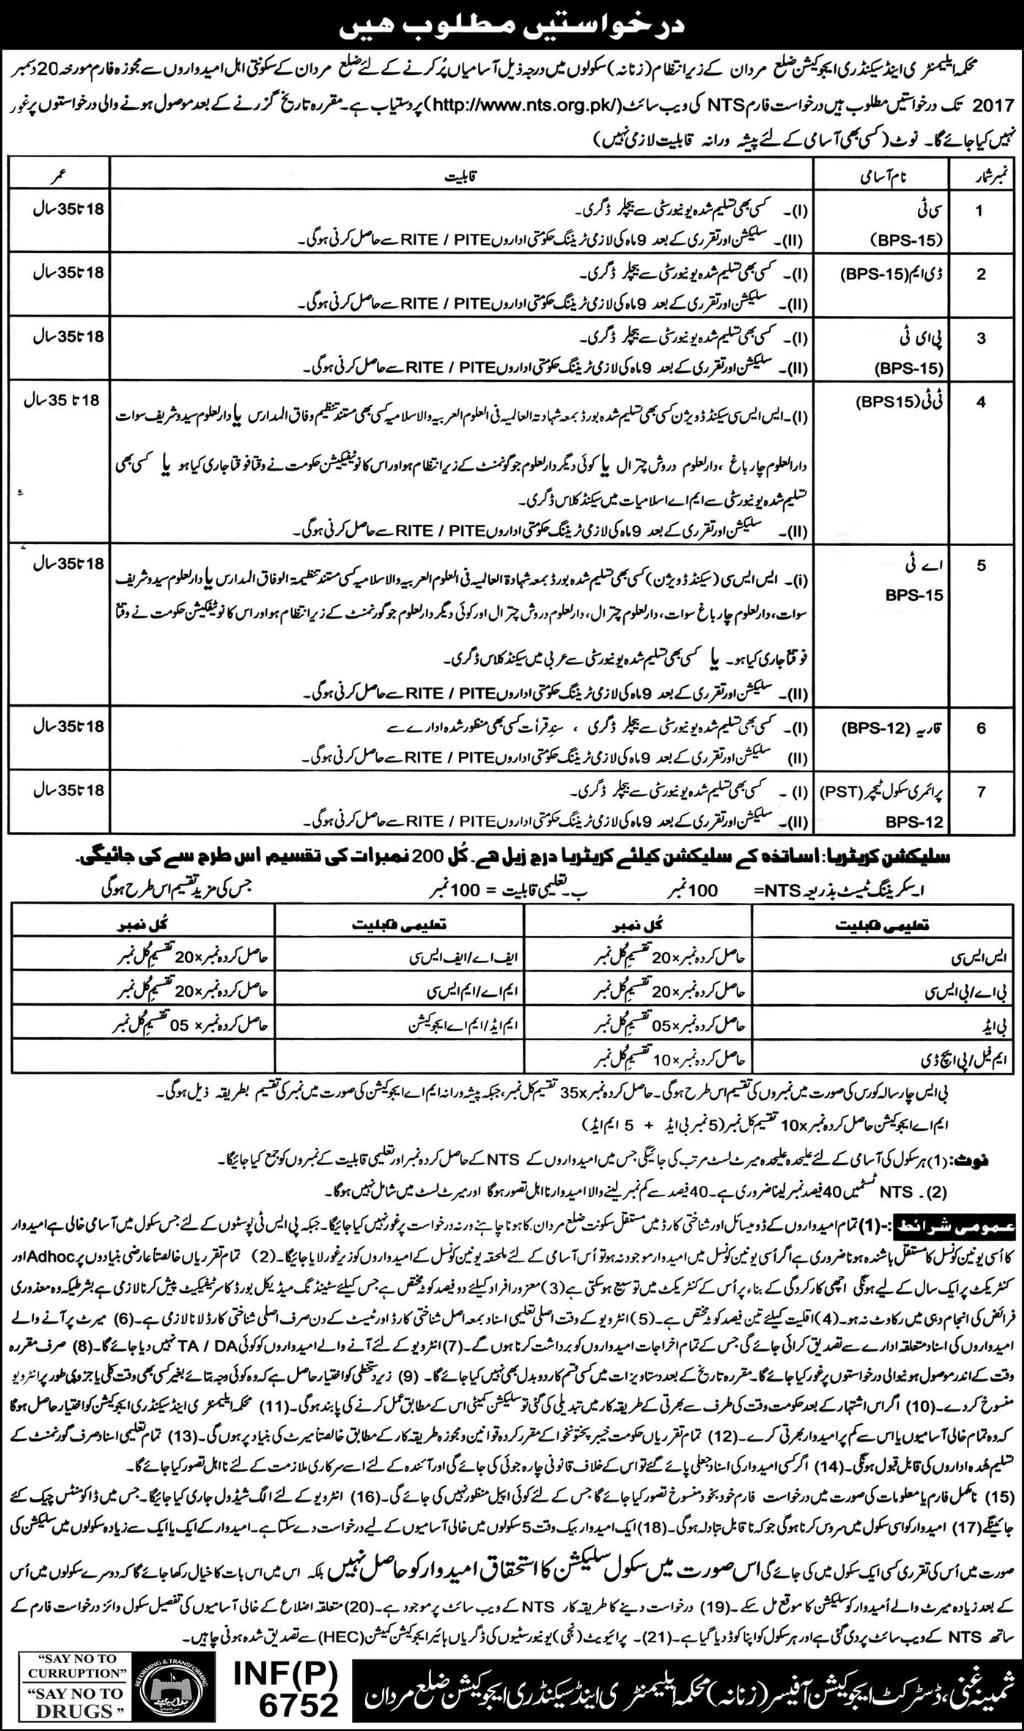 Jobs 2018 Elementary & Secondary Education Department Jobs 2018 KPK Mardan, for Teachers, CT, DM, PET, TT, AT Via NTS